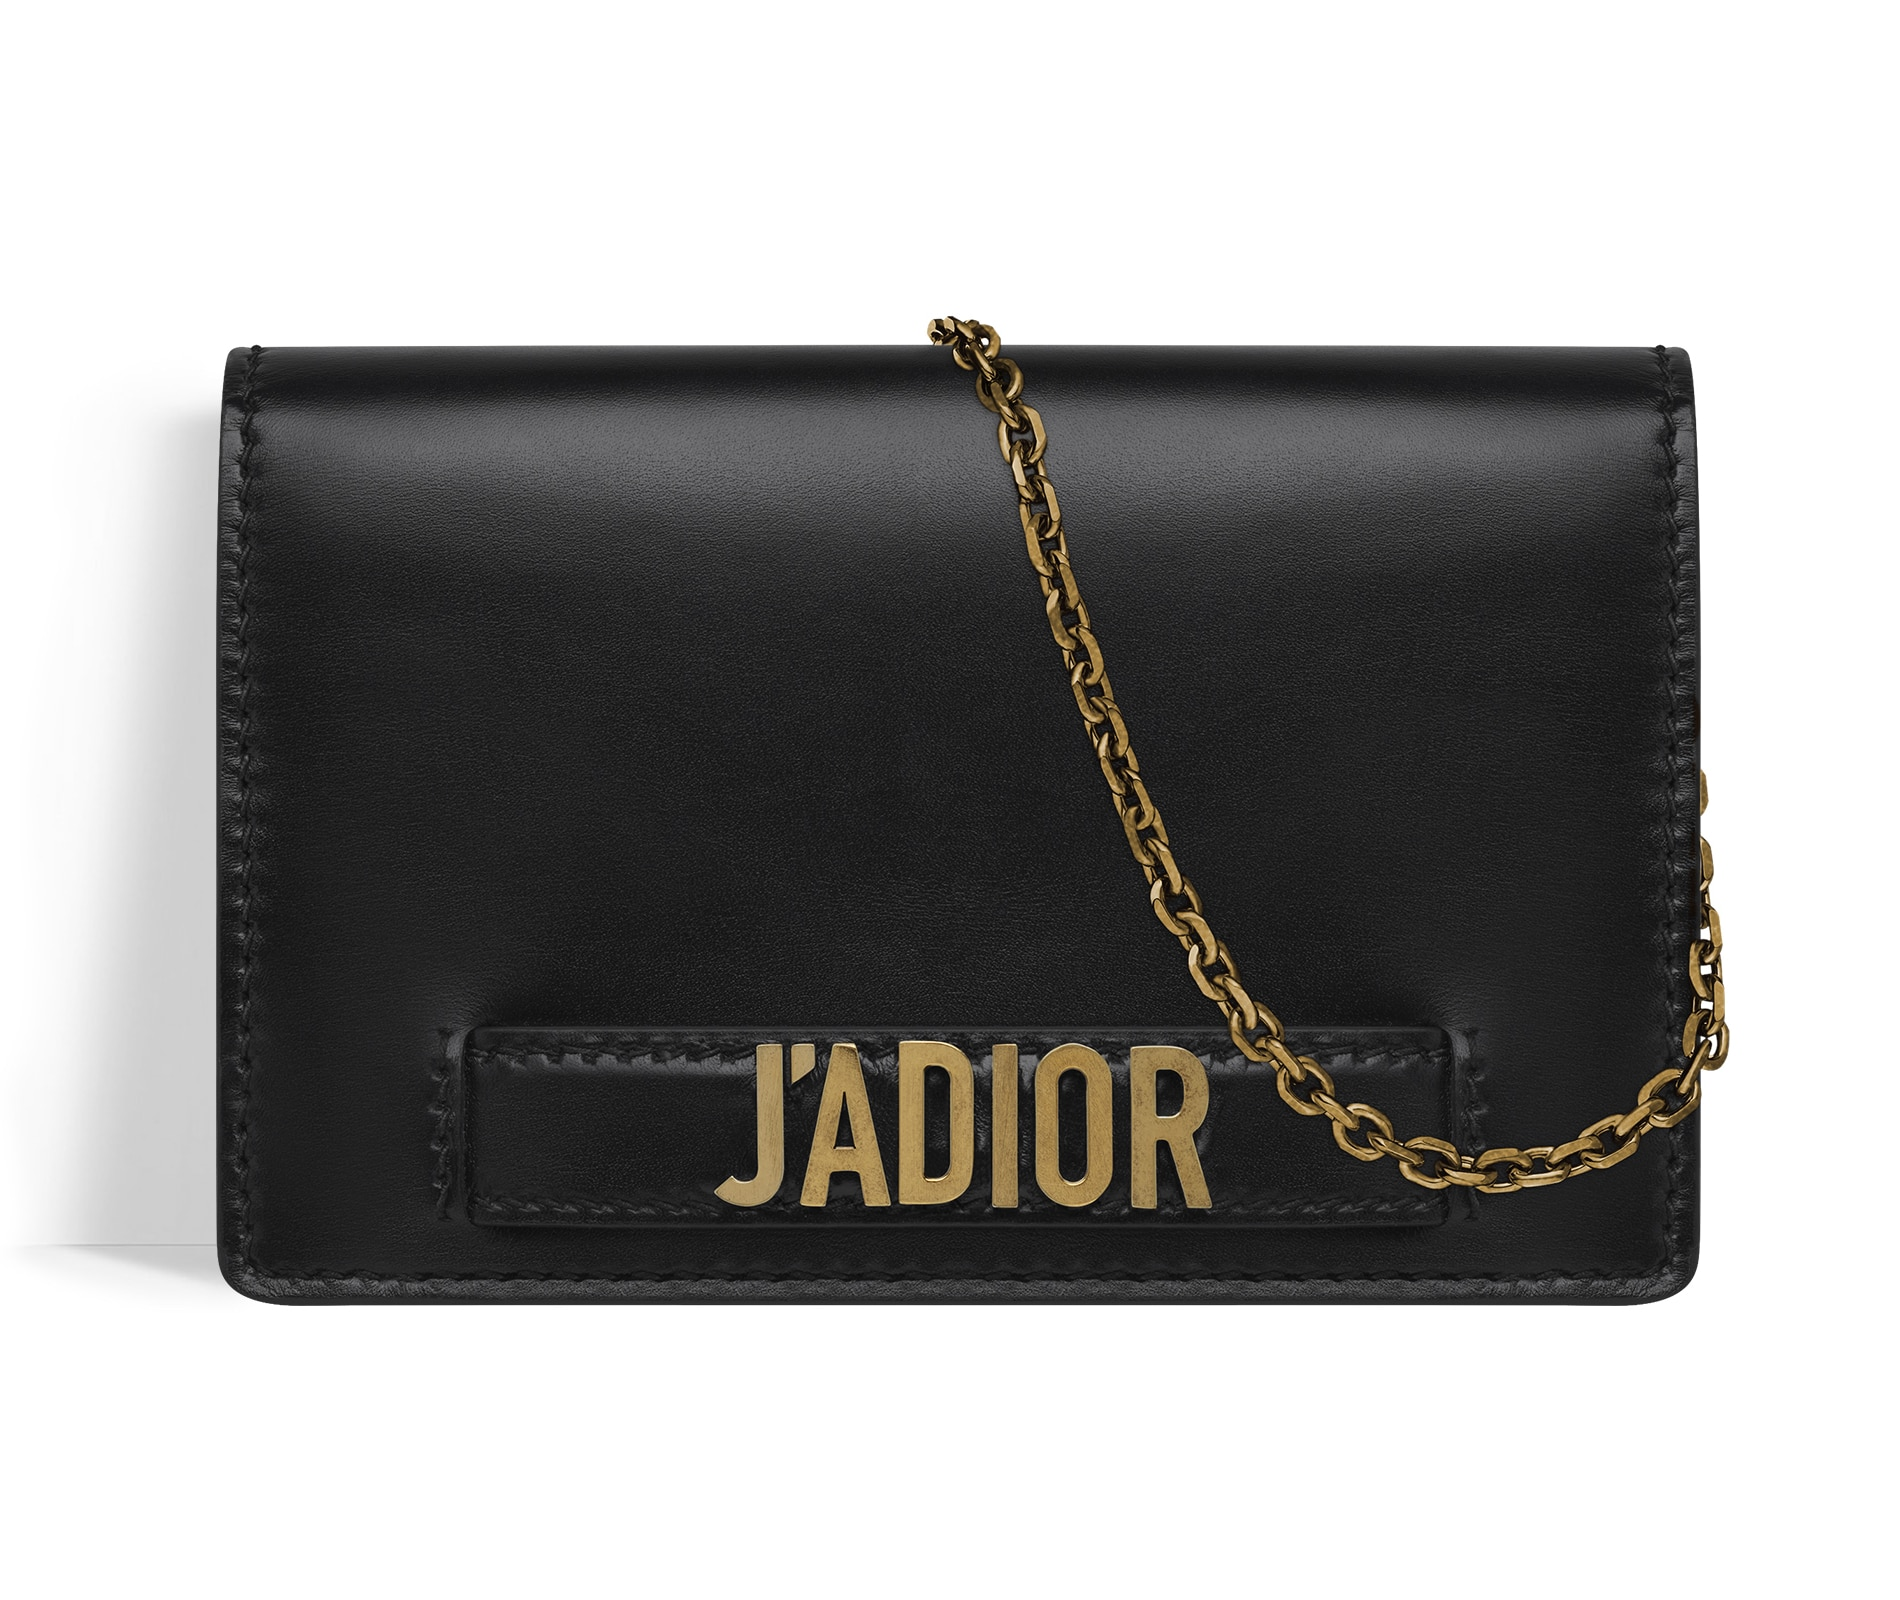 Dior Black J Adior Wallet On Chain Pouch Bag